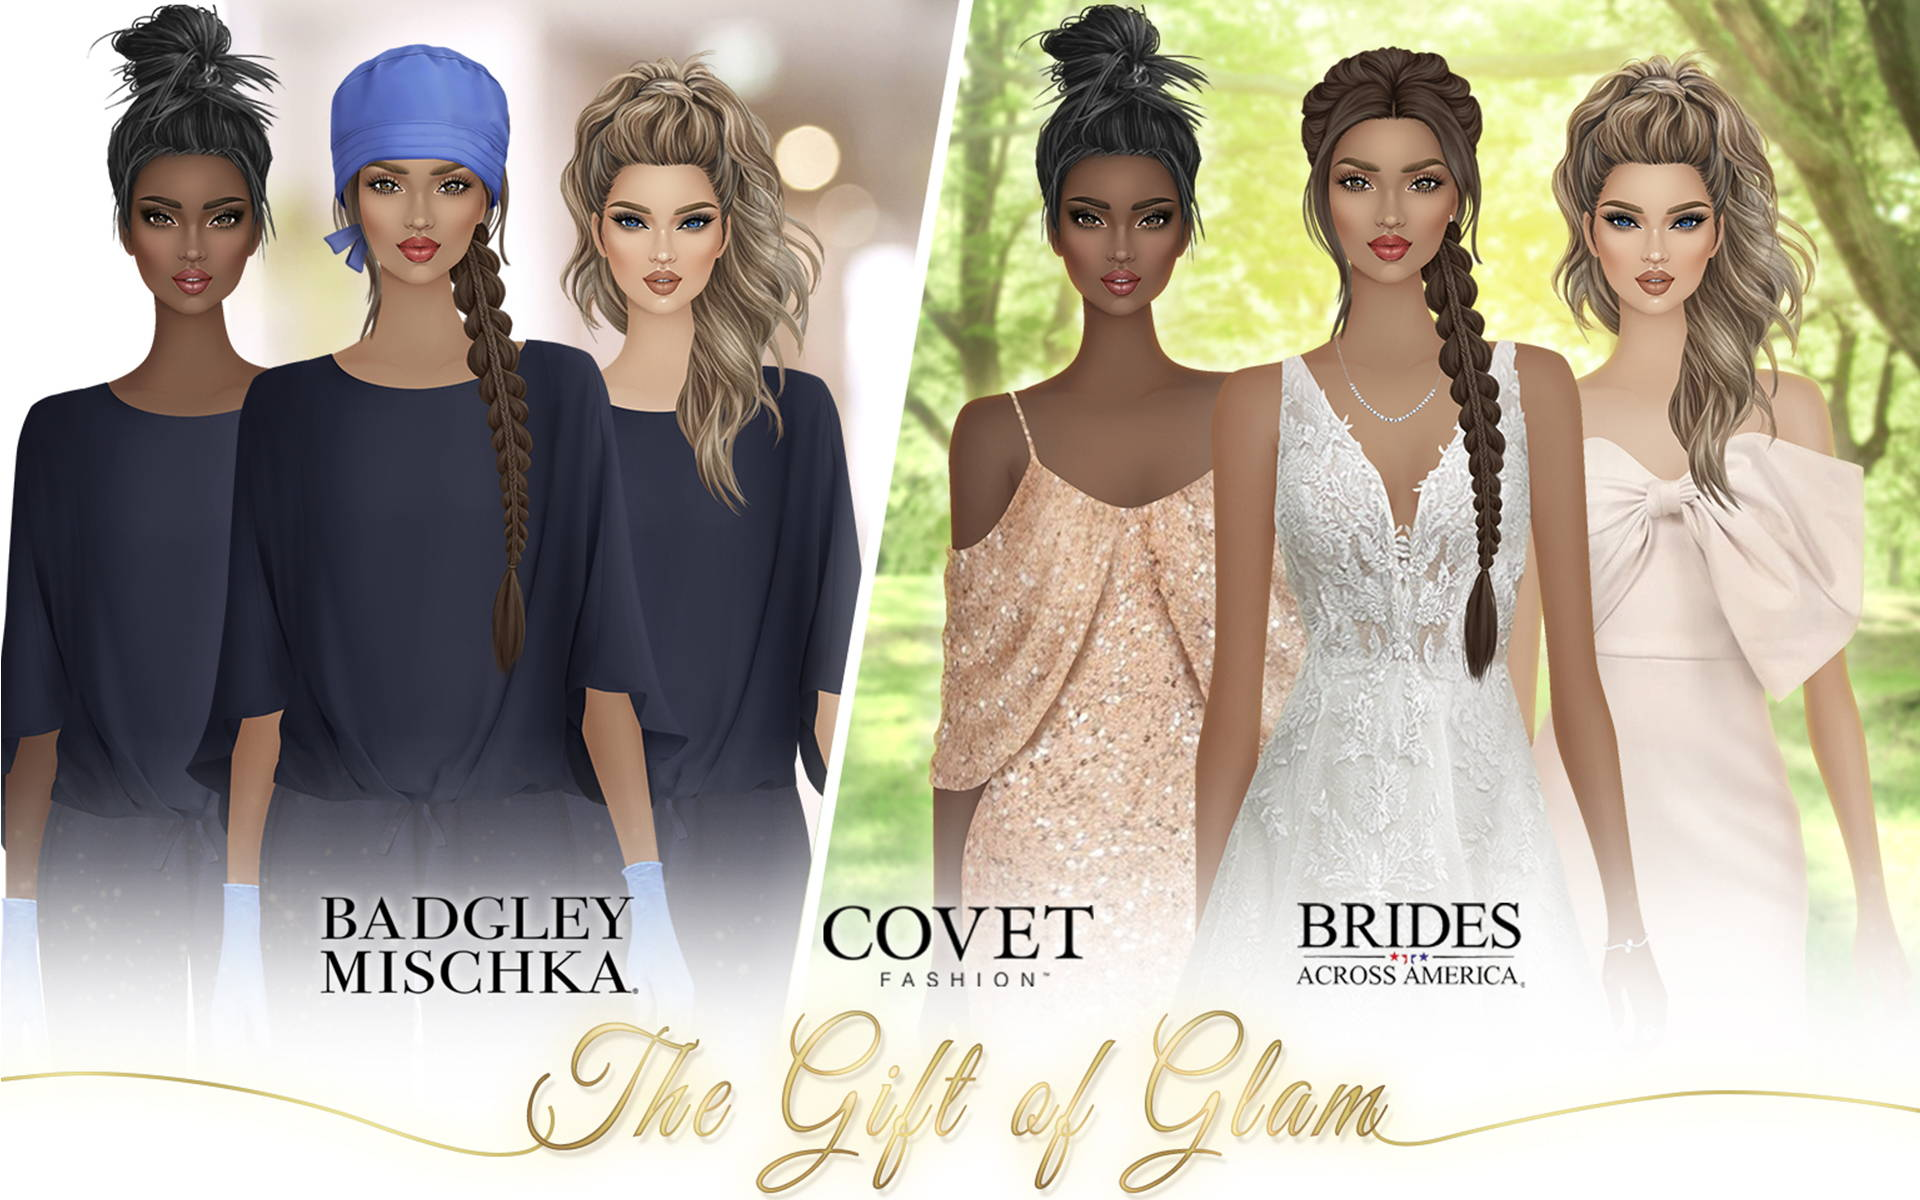 Gift of Glam Sweepstakes